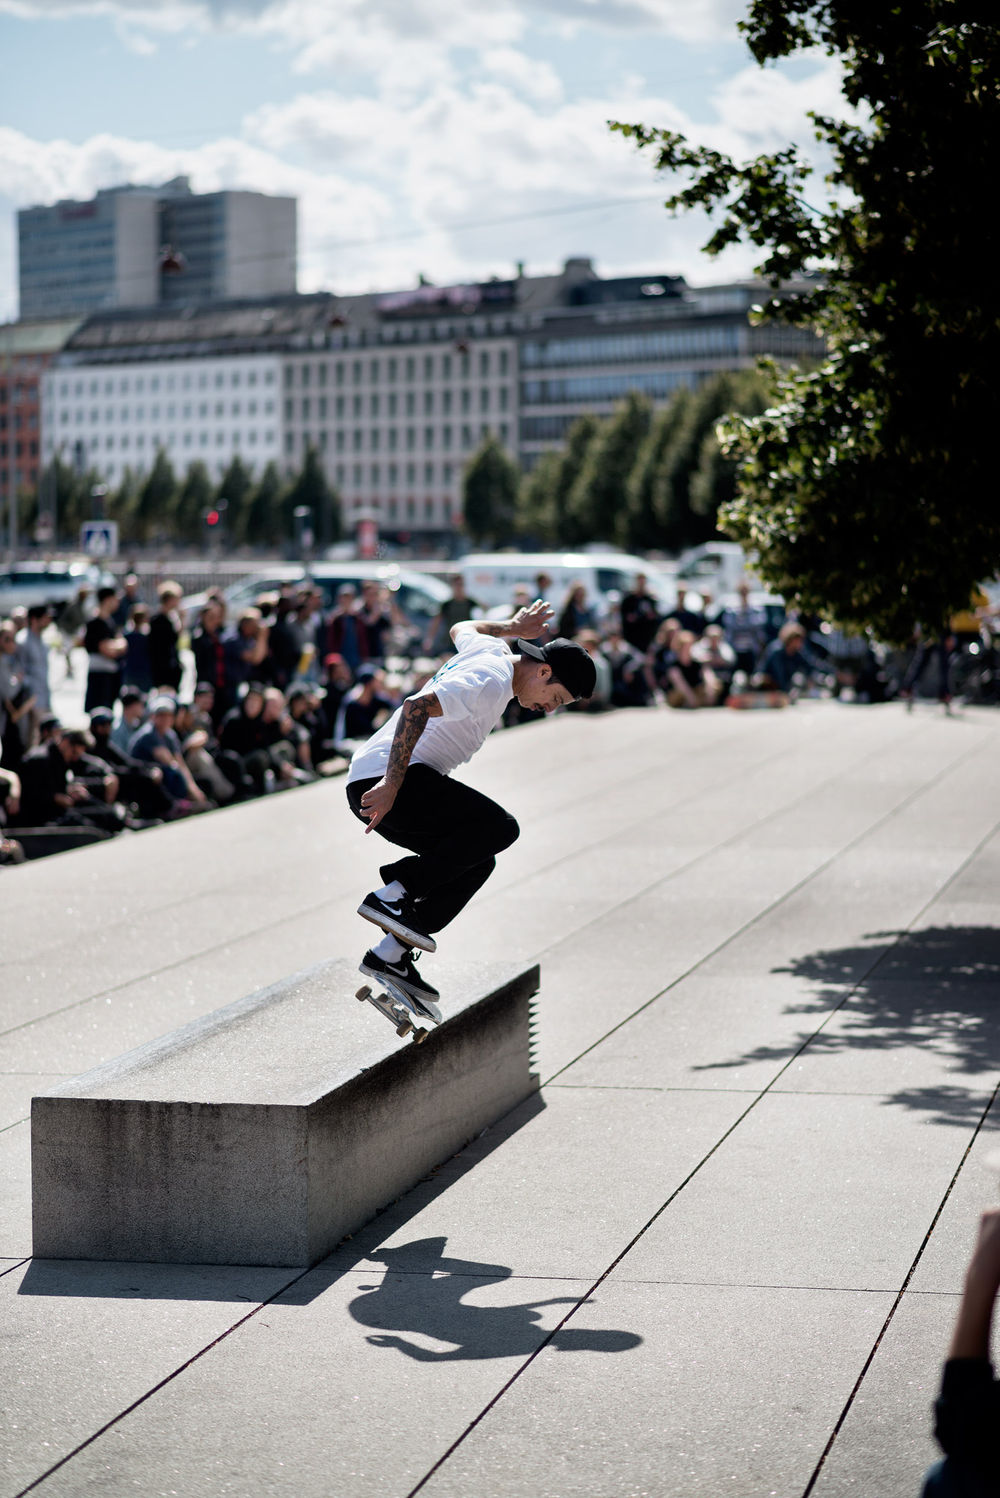 LUAN_OLIVEIRA_SWITCH_HEELFLIP_BACKSIDE_50_CPH_GREY_HENRY_KINGSFORD